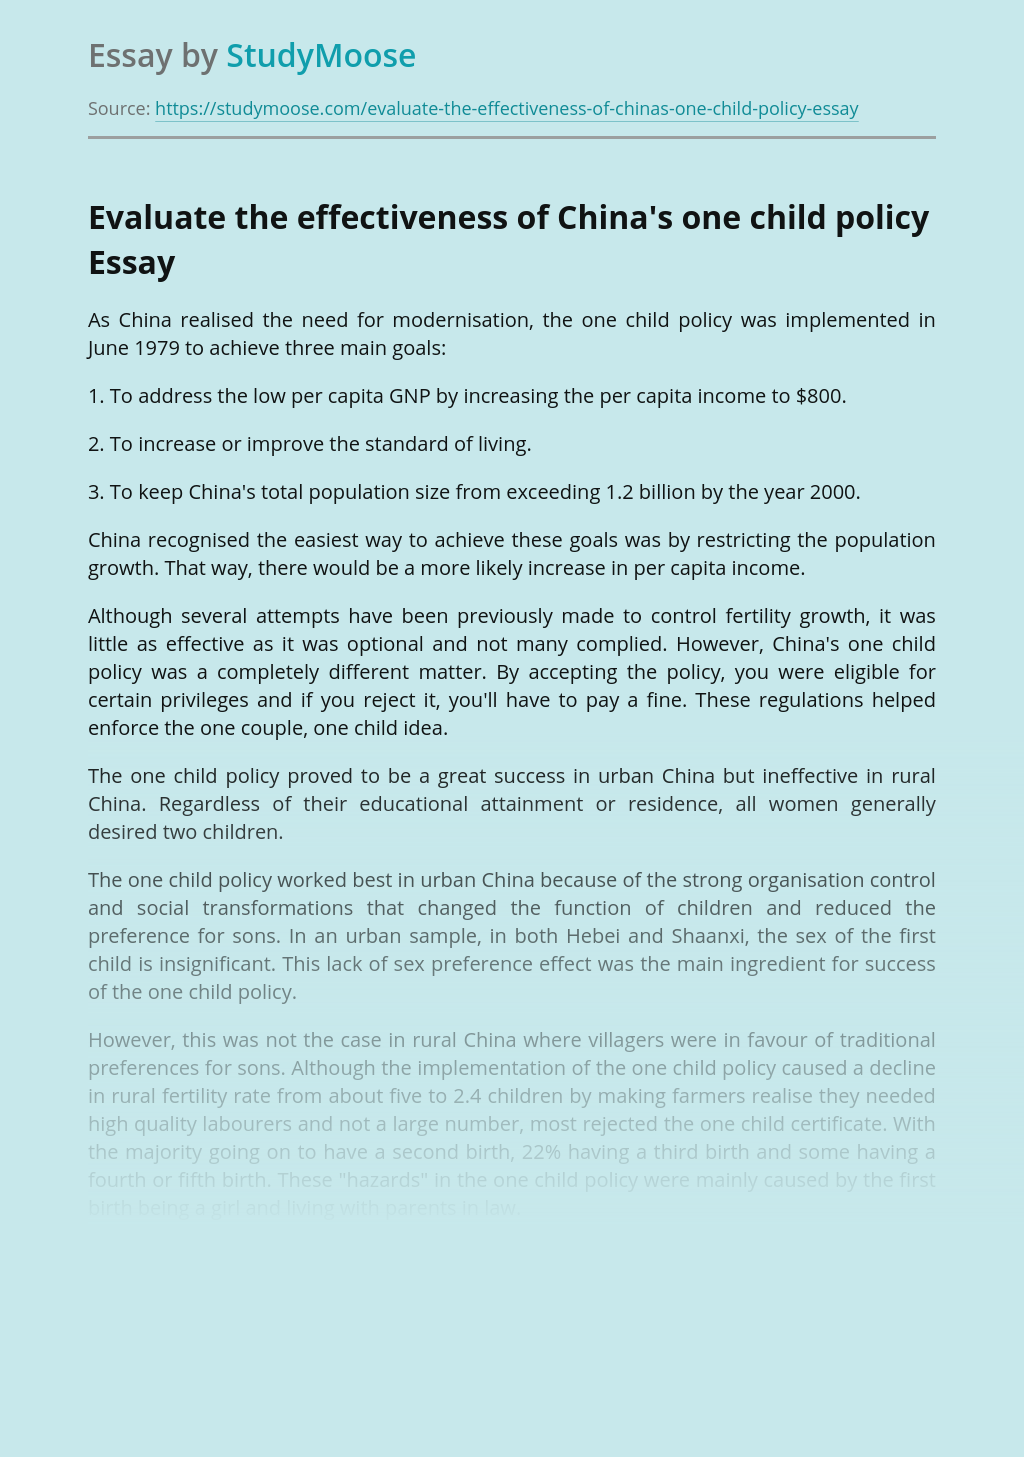 Evaluate the effectiveness of China's one child policy